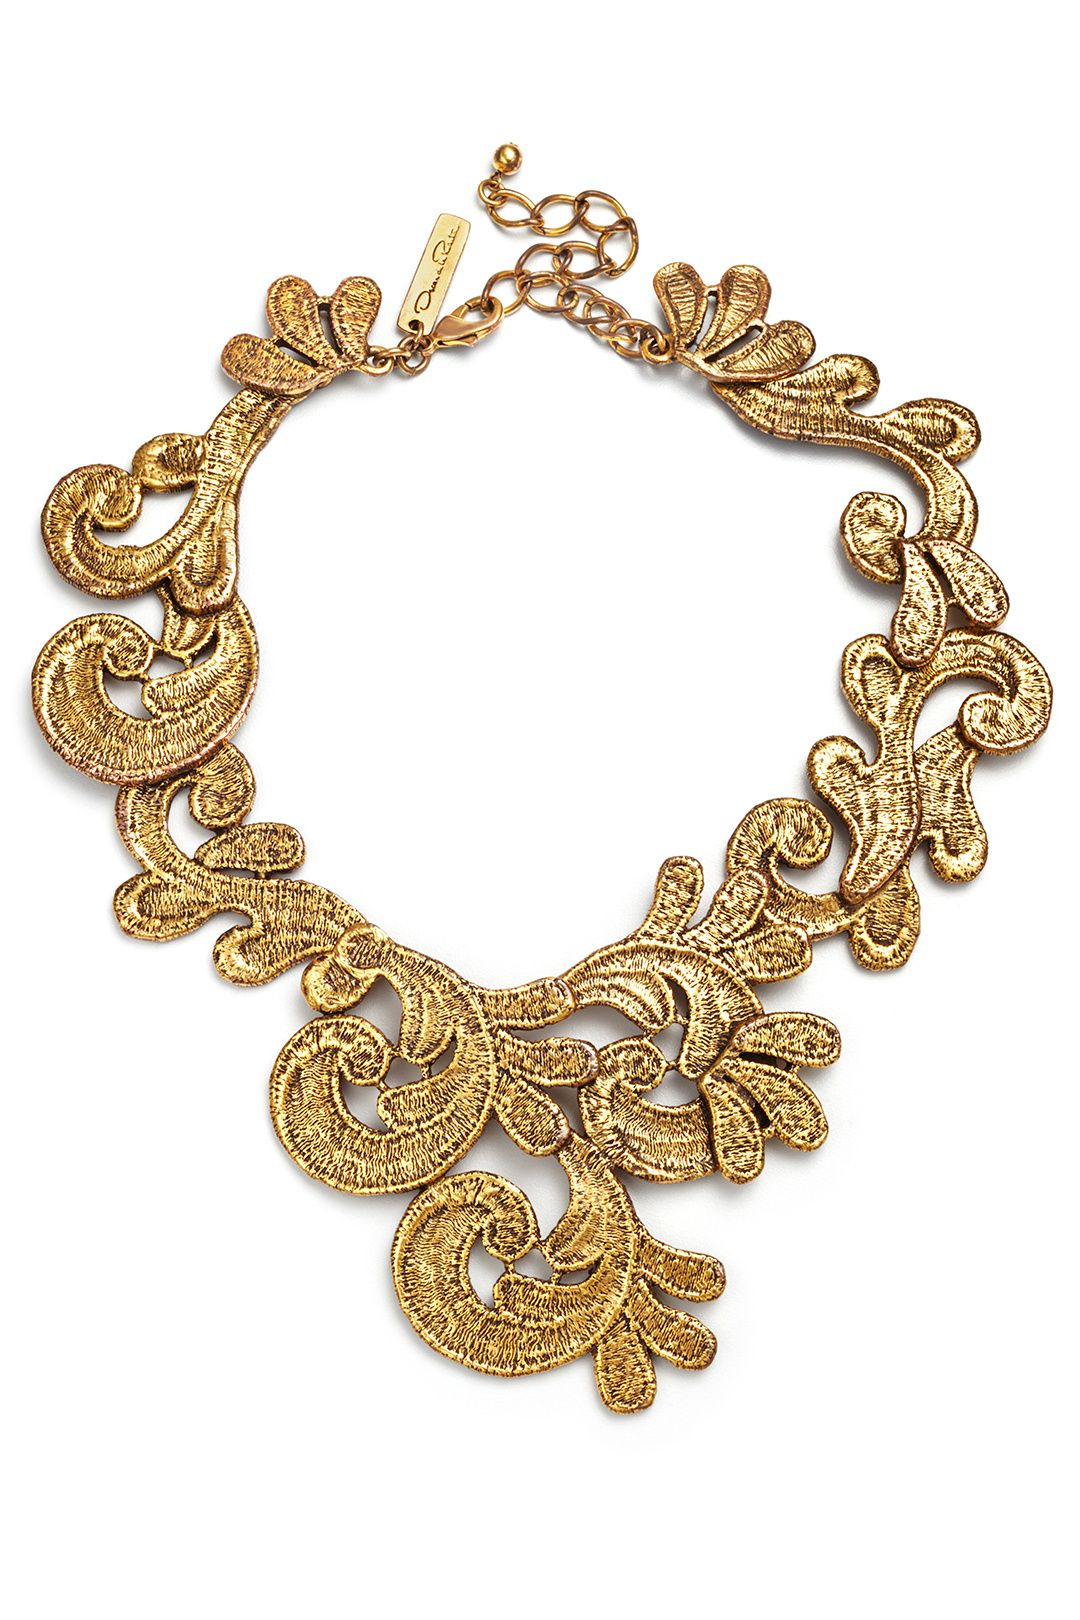 Rent French Quarter Jazz Necklace by Oscar de la Renta for $85 only at Rent the Runway.